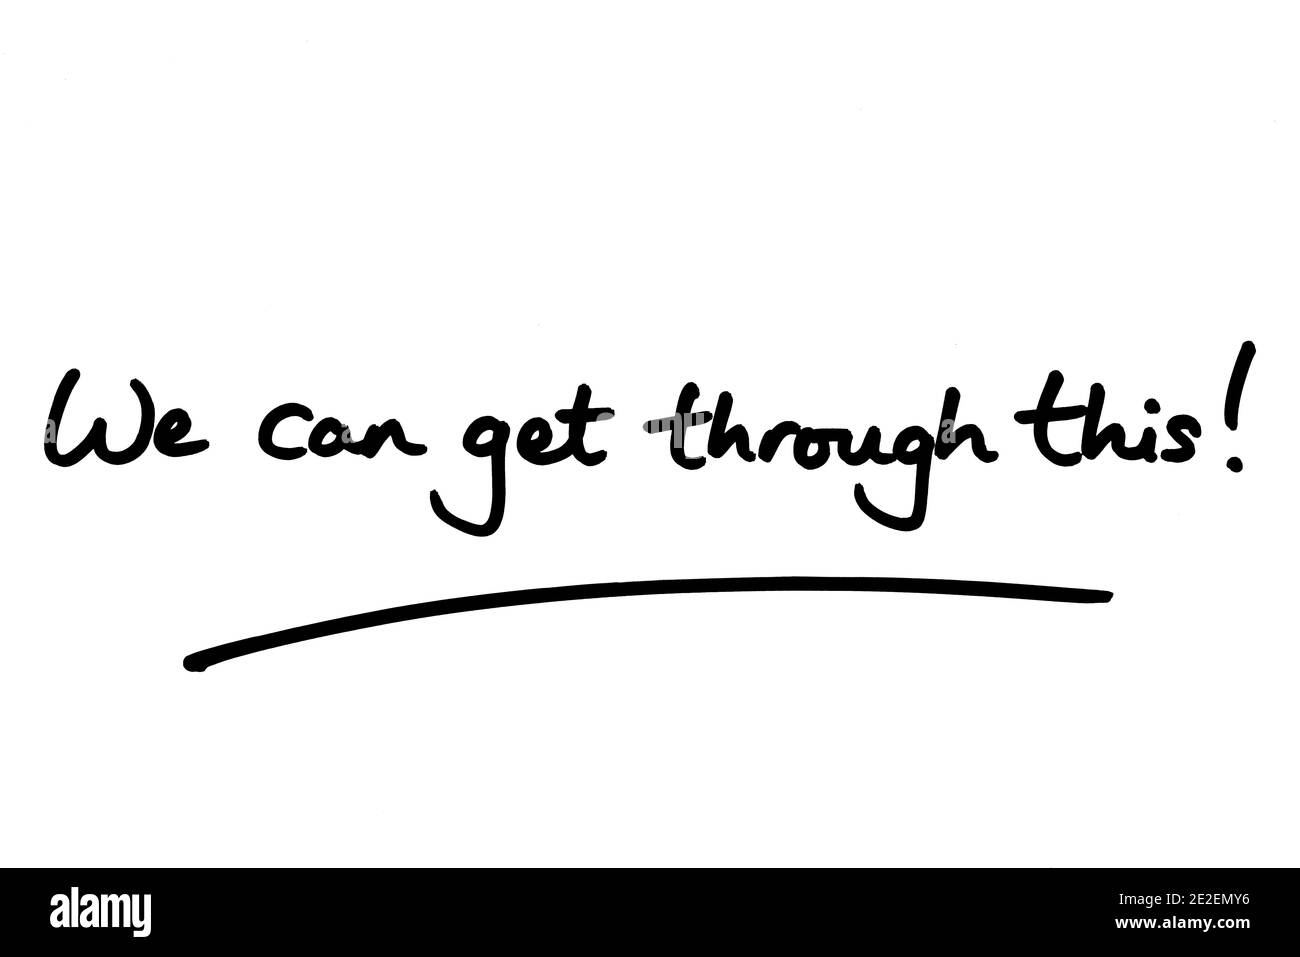 We can get through this! handwritten on a white background. Stock Photo